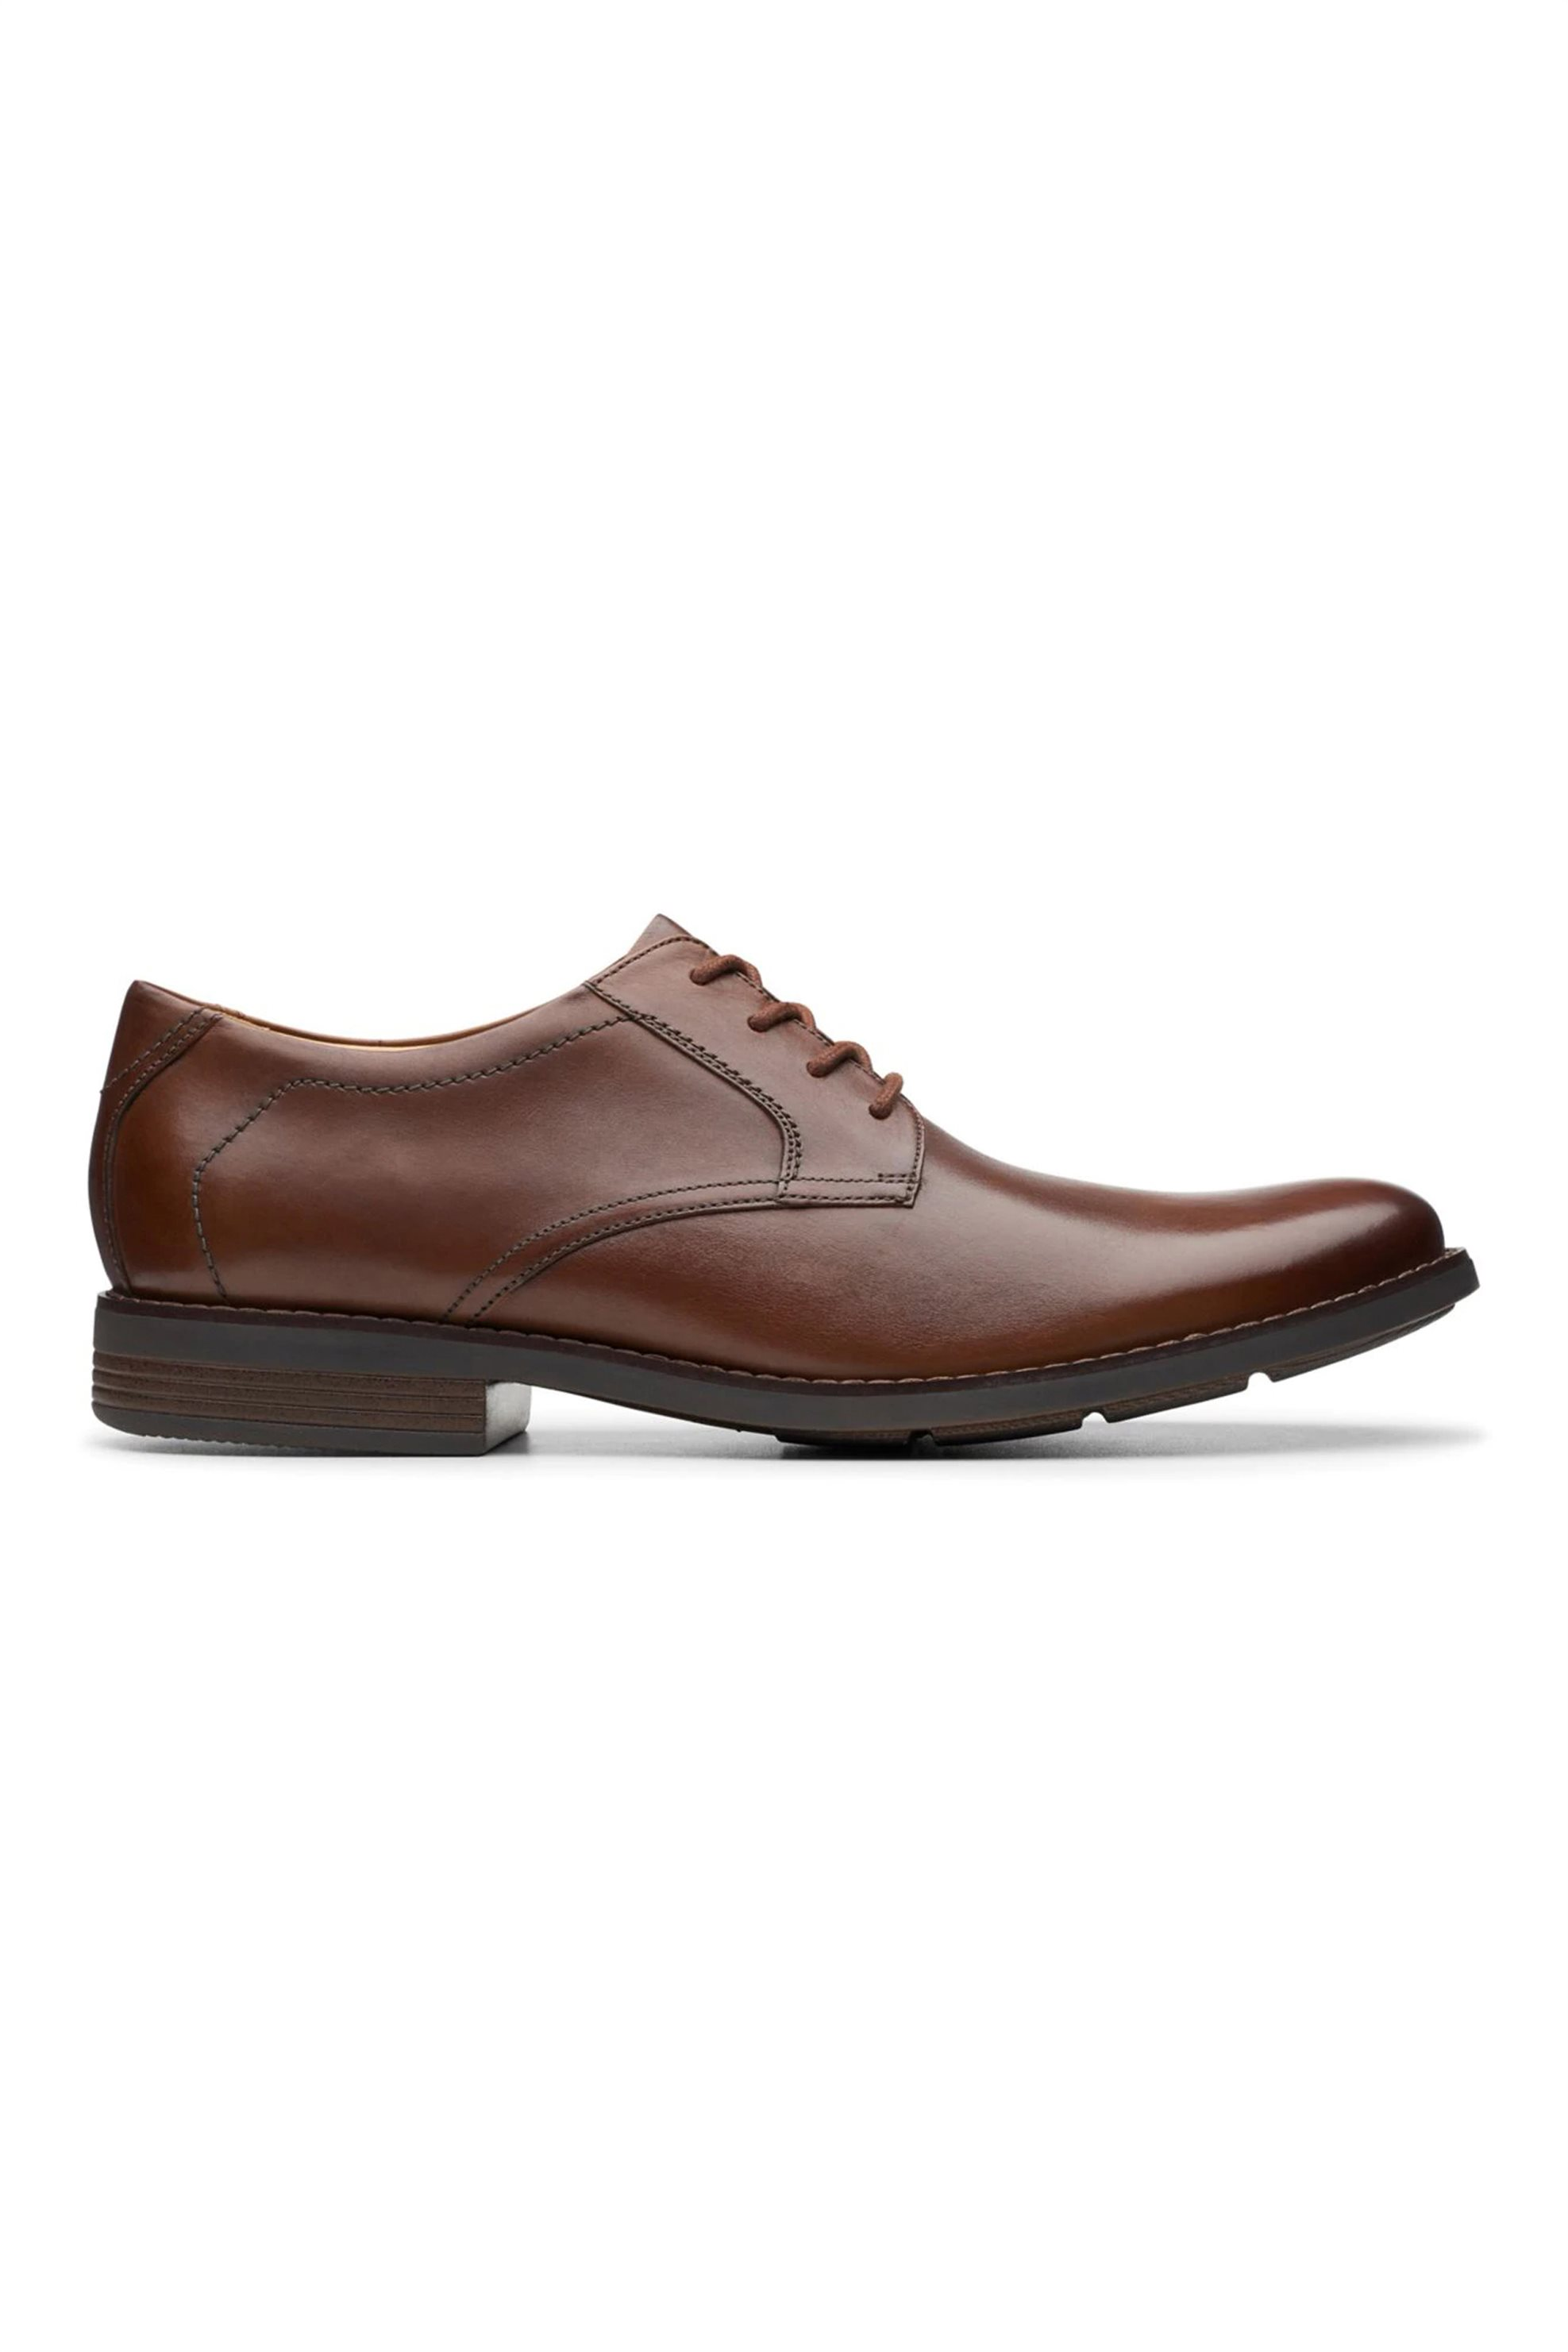 "Clarks ανδρικά δερμάτινα παπούτσια oxford ""Becken Lace"" – 26145296 – Καφέ"